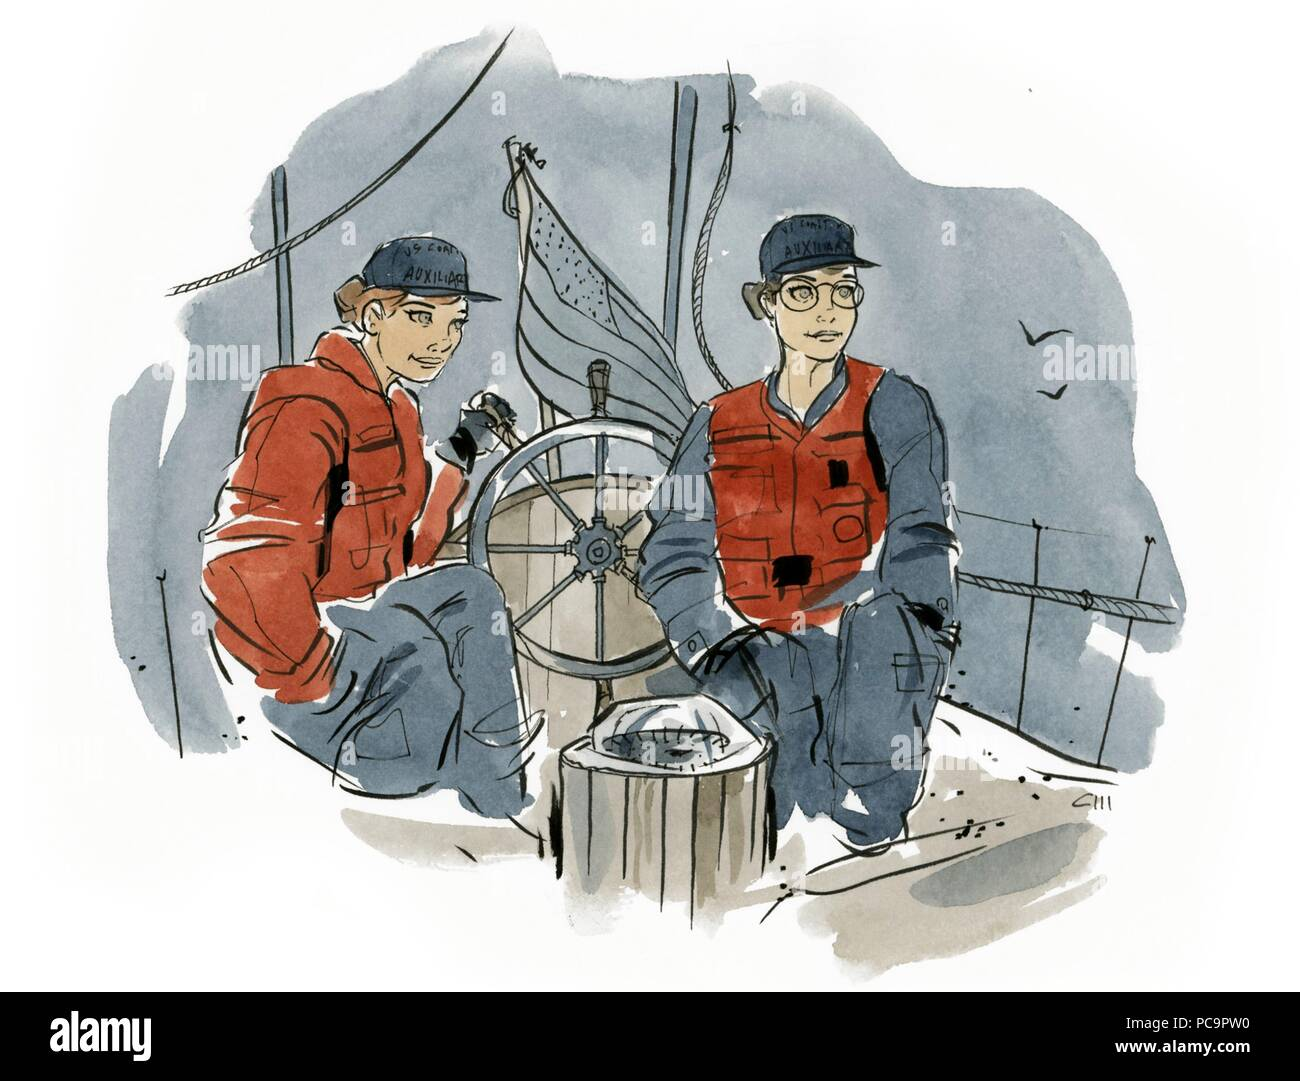 Coast Guard Auxiliarists Nancy Schimmelman and Cheryl Warner sail aboard Gloriana, a 48-foot schooner and Coast Guard Auxiliary platform, in the San Francisco Bay, July 24, 2018. The schooner, built in 1949, is owned and sailed by Schimmelman. (U.S. Coast Guard illustration by Petty Officer 2nd Class Cory J. Mendenhall /Released). () - Stock Image